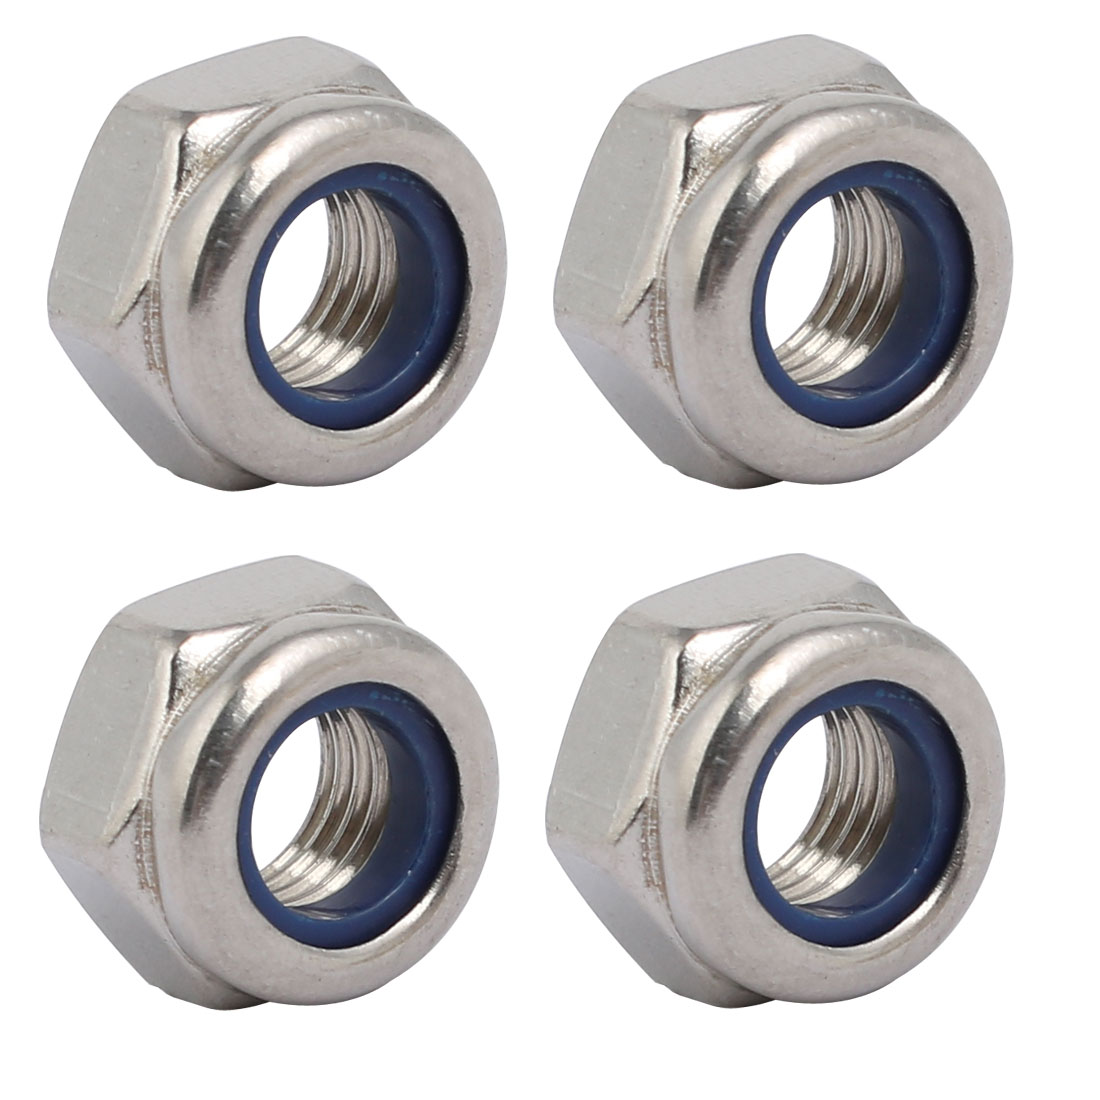 4pcs M8 x 1mm Pitch Metric Fine Thread 304 Stainless Steel Hex Lock Nuts